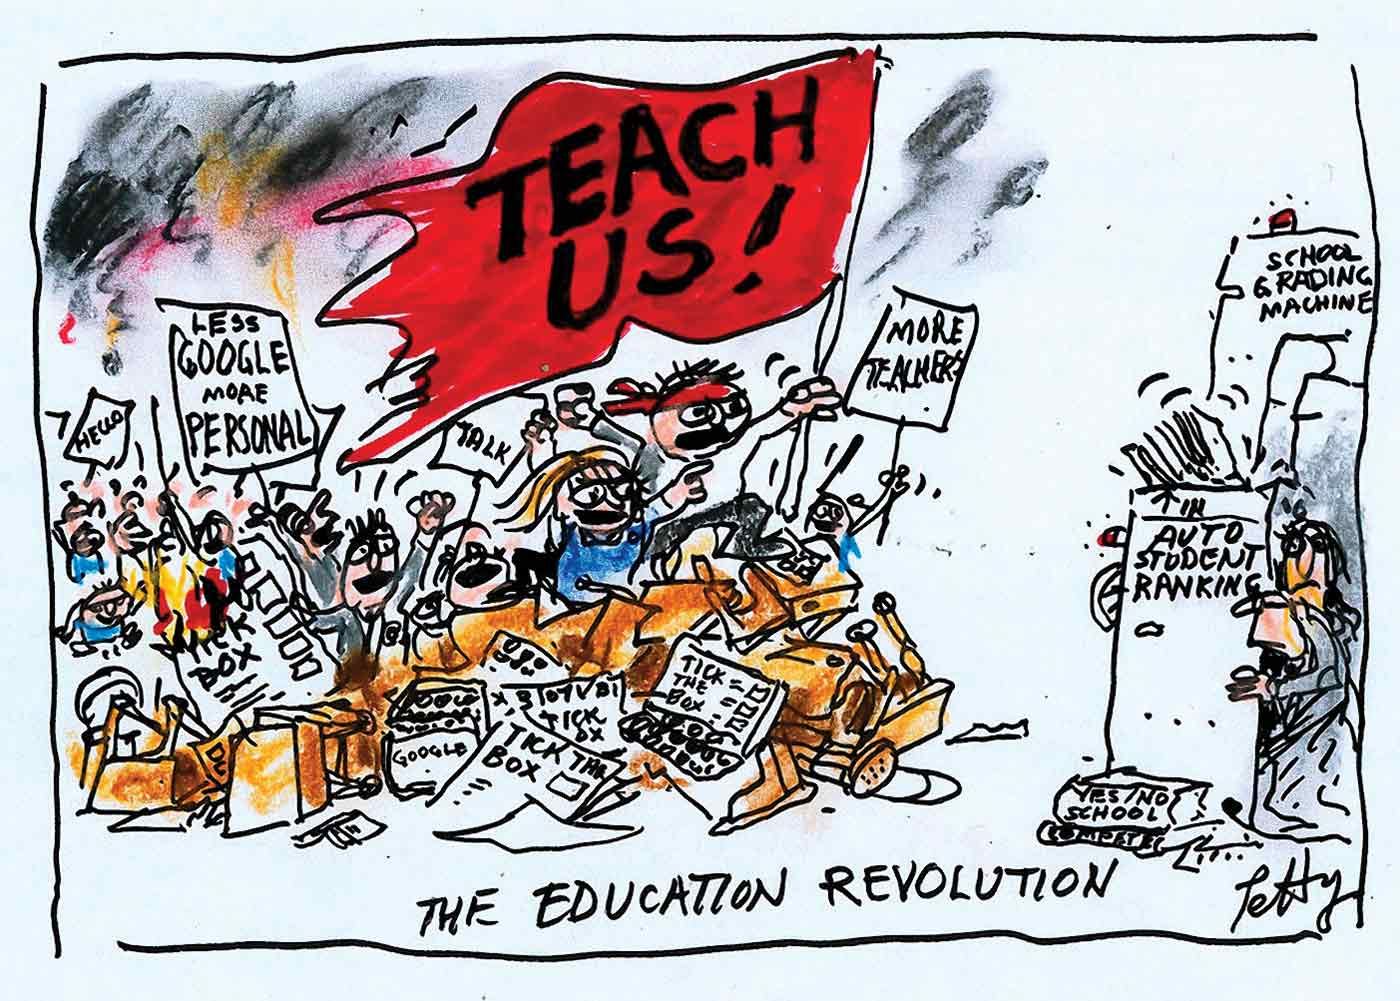 A colour cartoon titled 'The Education Revolution'. To the left of the image is a large group of students waving placards that say things such as 'Less Google more personal' and 'More teachers'. One student at the head of the group holds a large red flag that says 'Teach us!' in capital letters. The students are climbing a barricade made up of school furniture and discarded documents. At the right of the image is a group of adults who are taking shelter behind machines marked 'Auto student ranking' and 'School grading machine'.  - click to view larger image